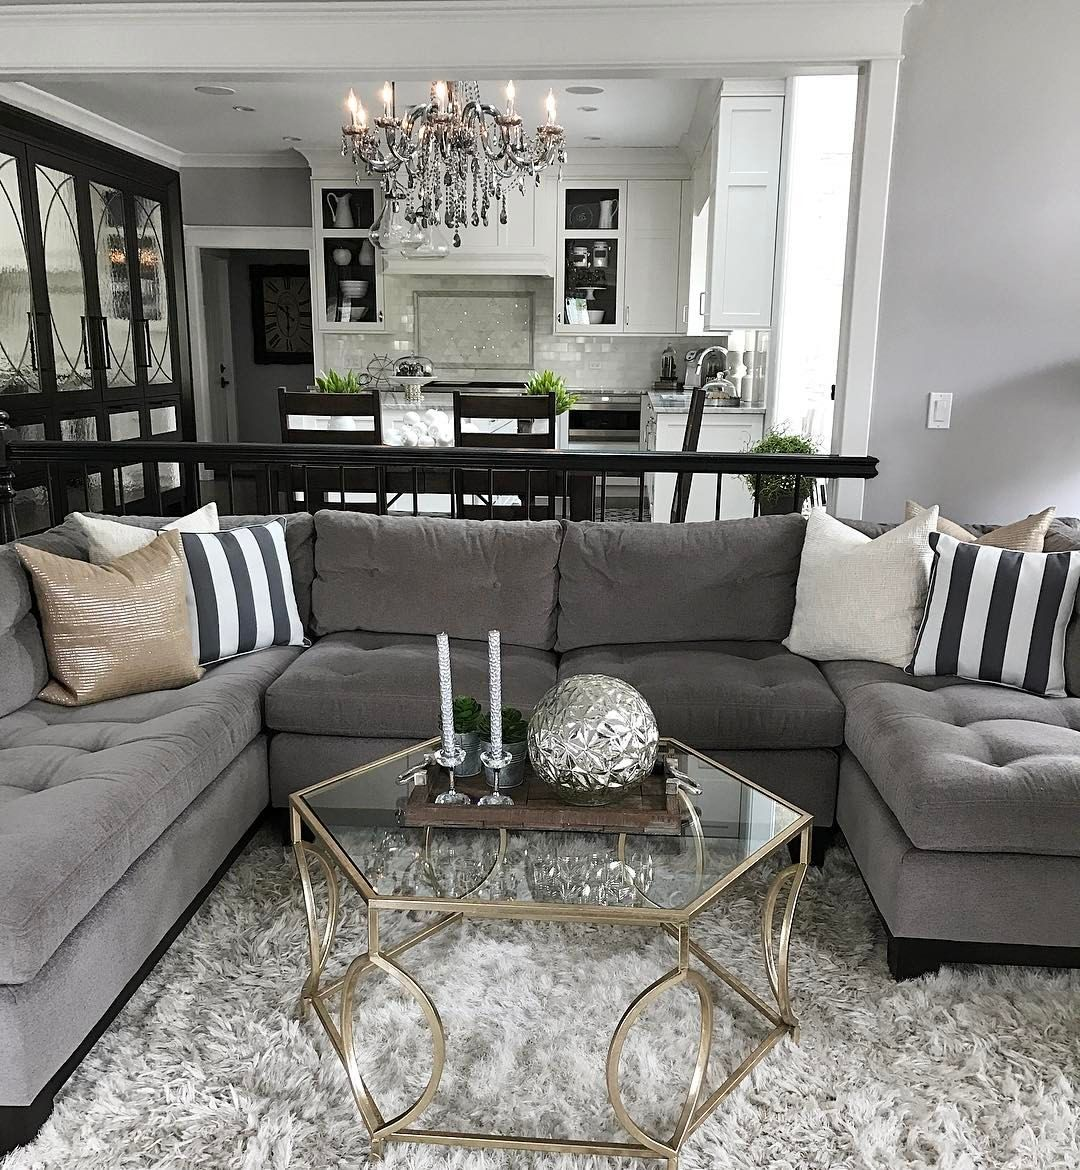 Change up the gray couch with and chic black and white striped